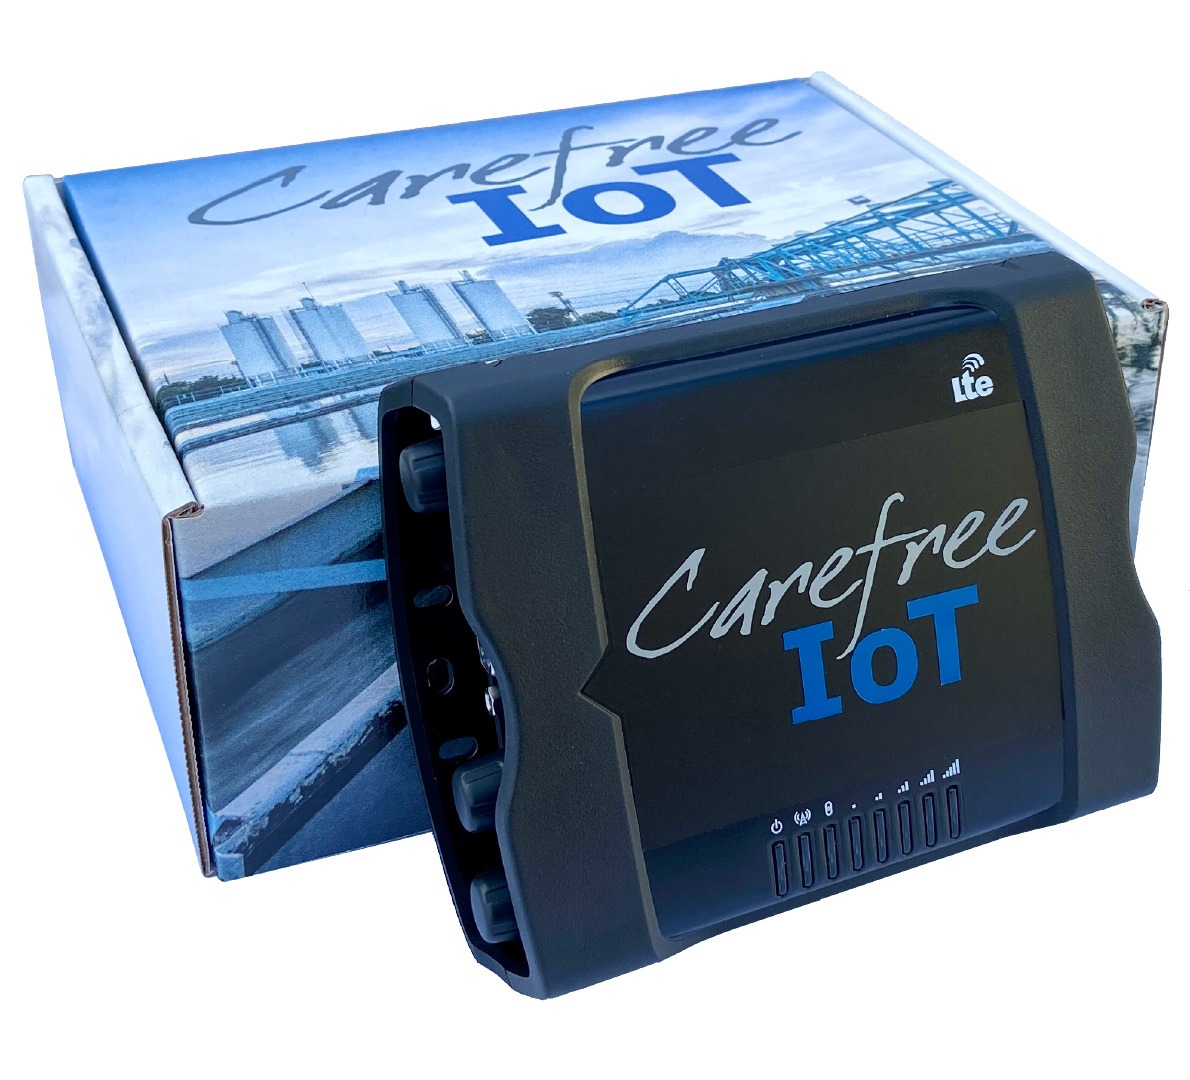 A photo of the CarefreeIoT device and its box.